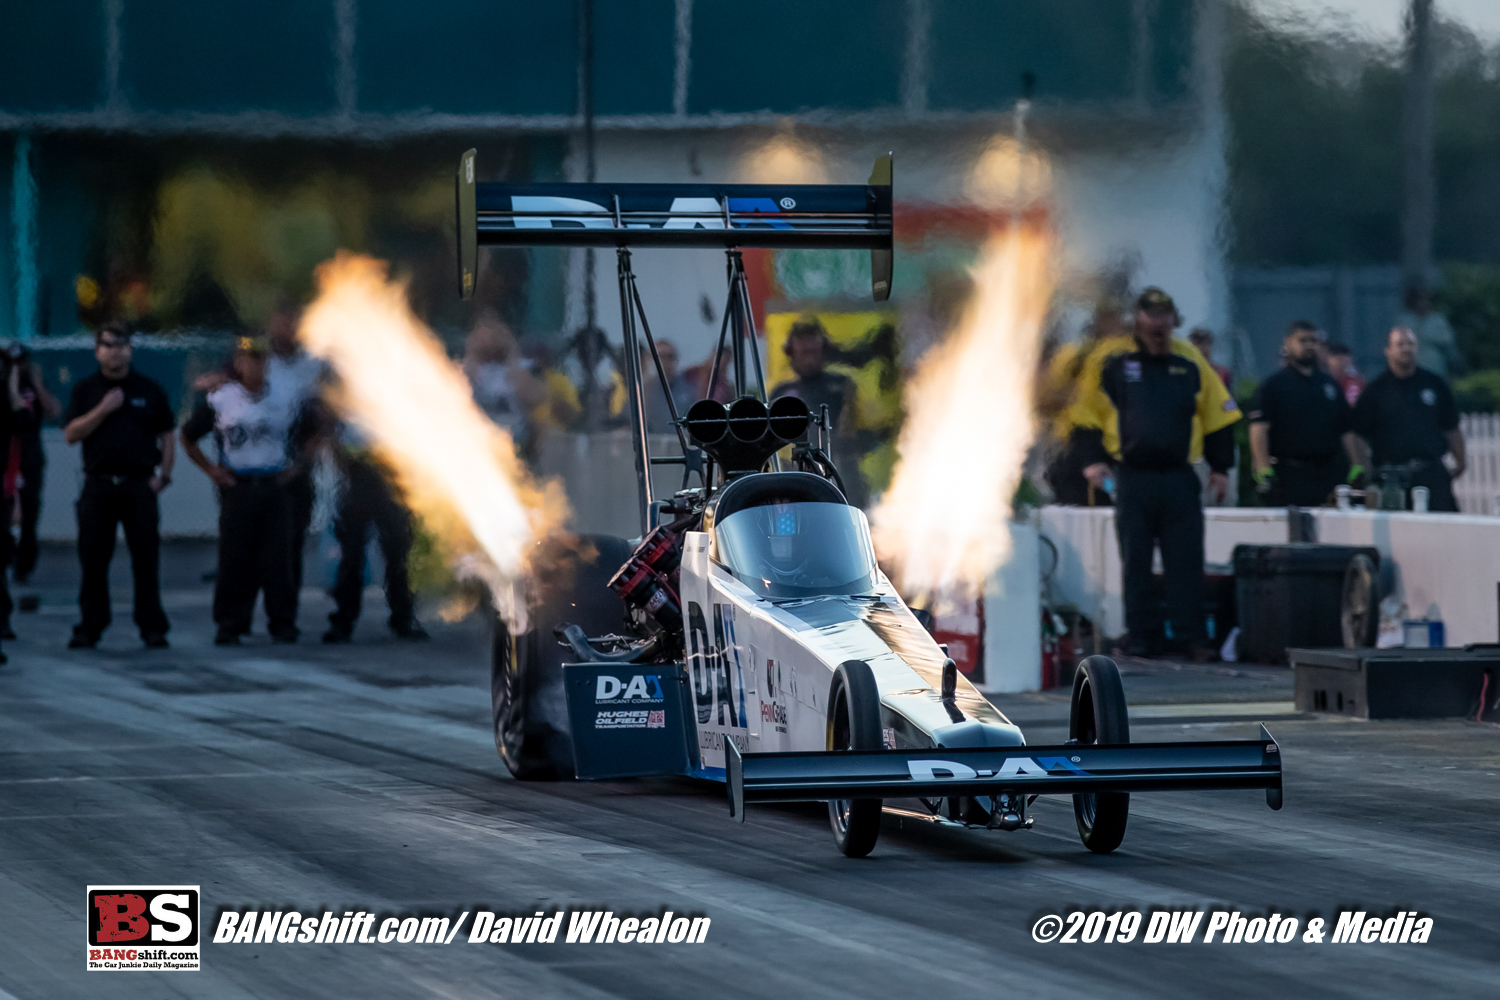 2019 NHRA Gatornationals Photo Coverage: Nitro Funny Car and Top Fuel Action Images From Gainesville